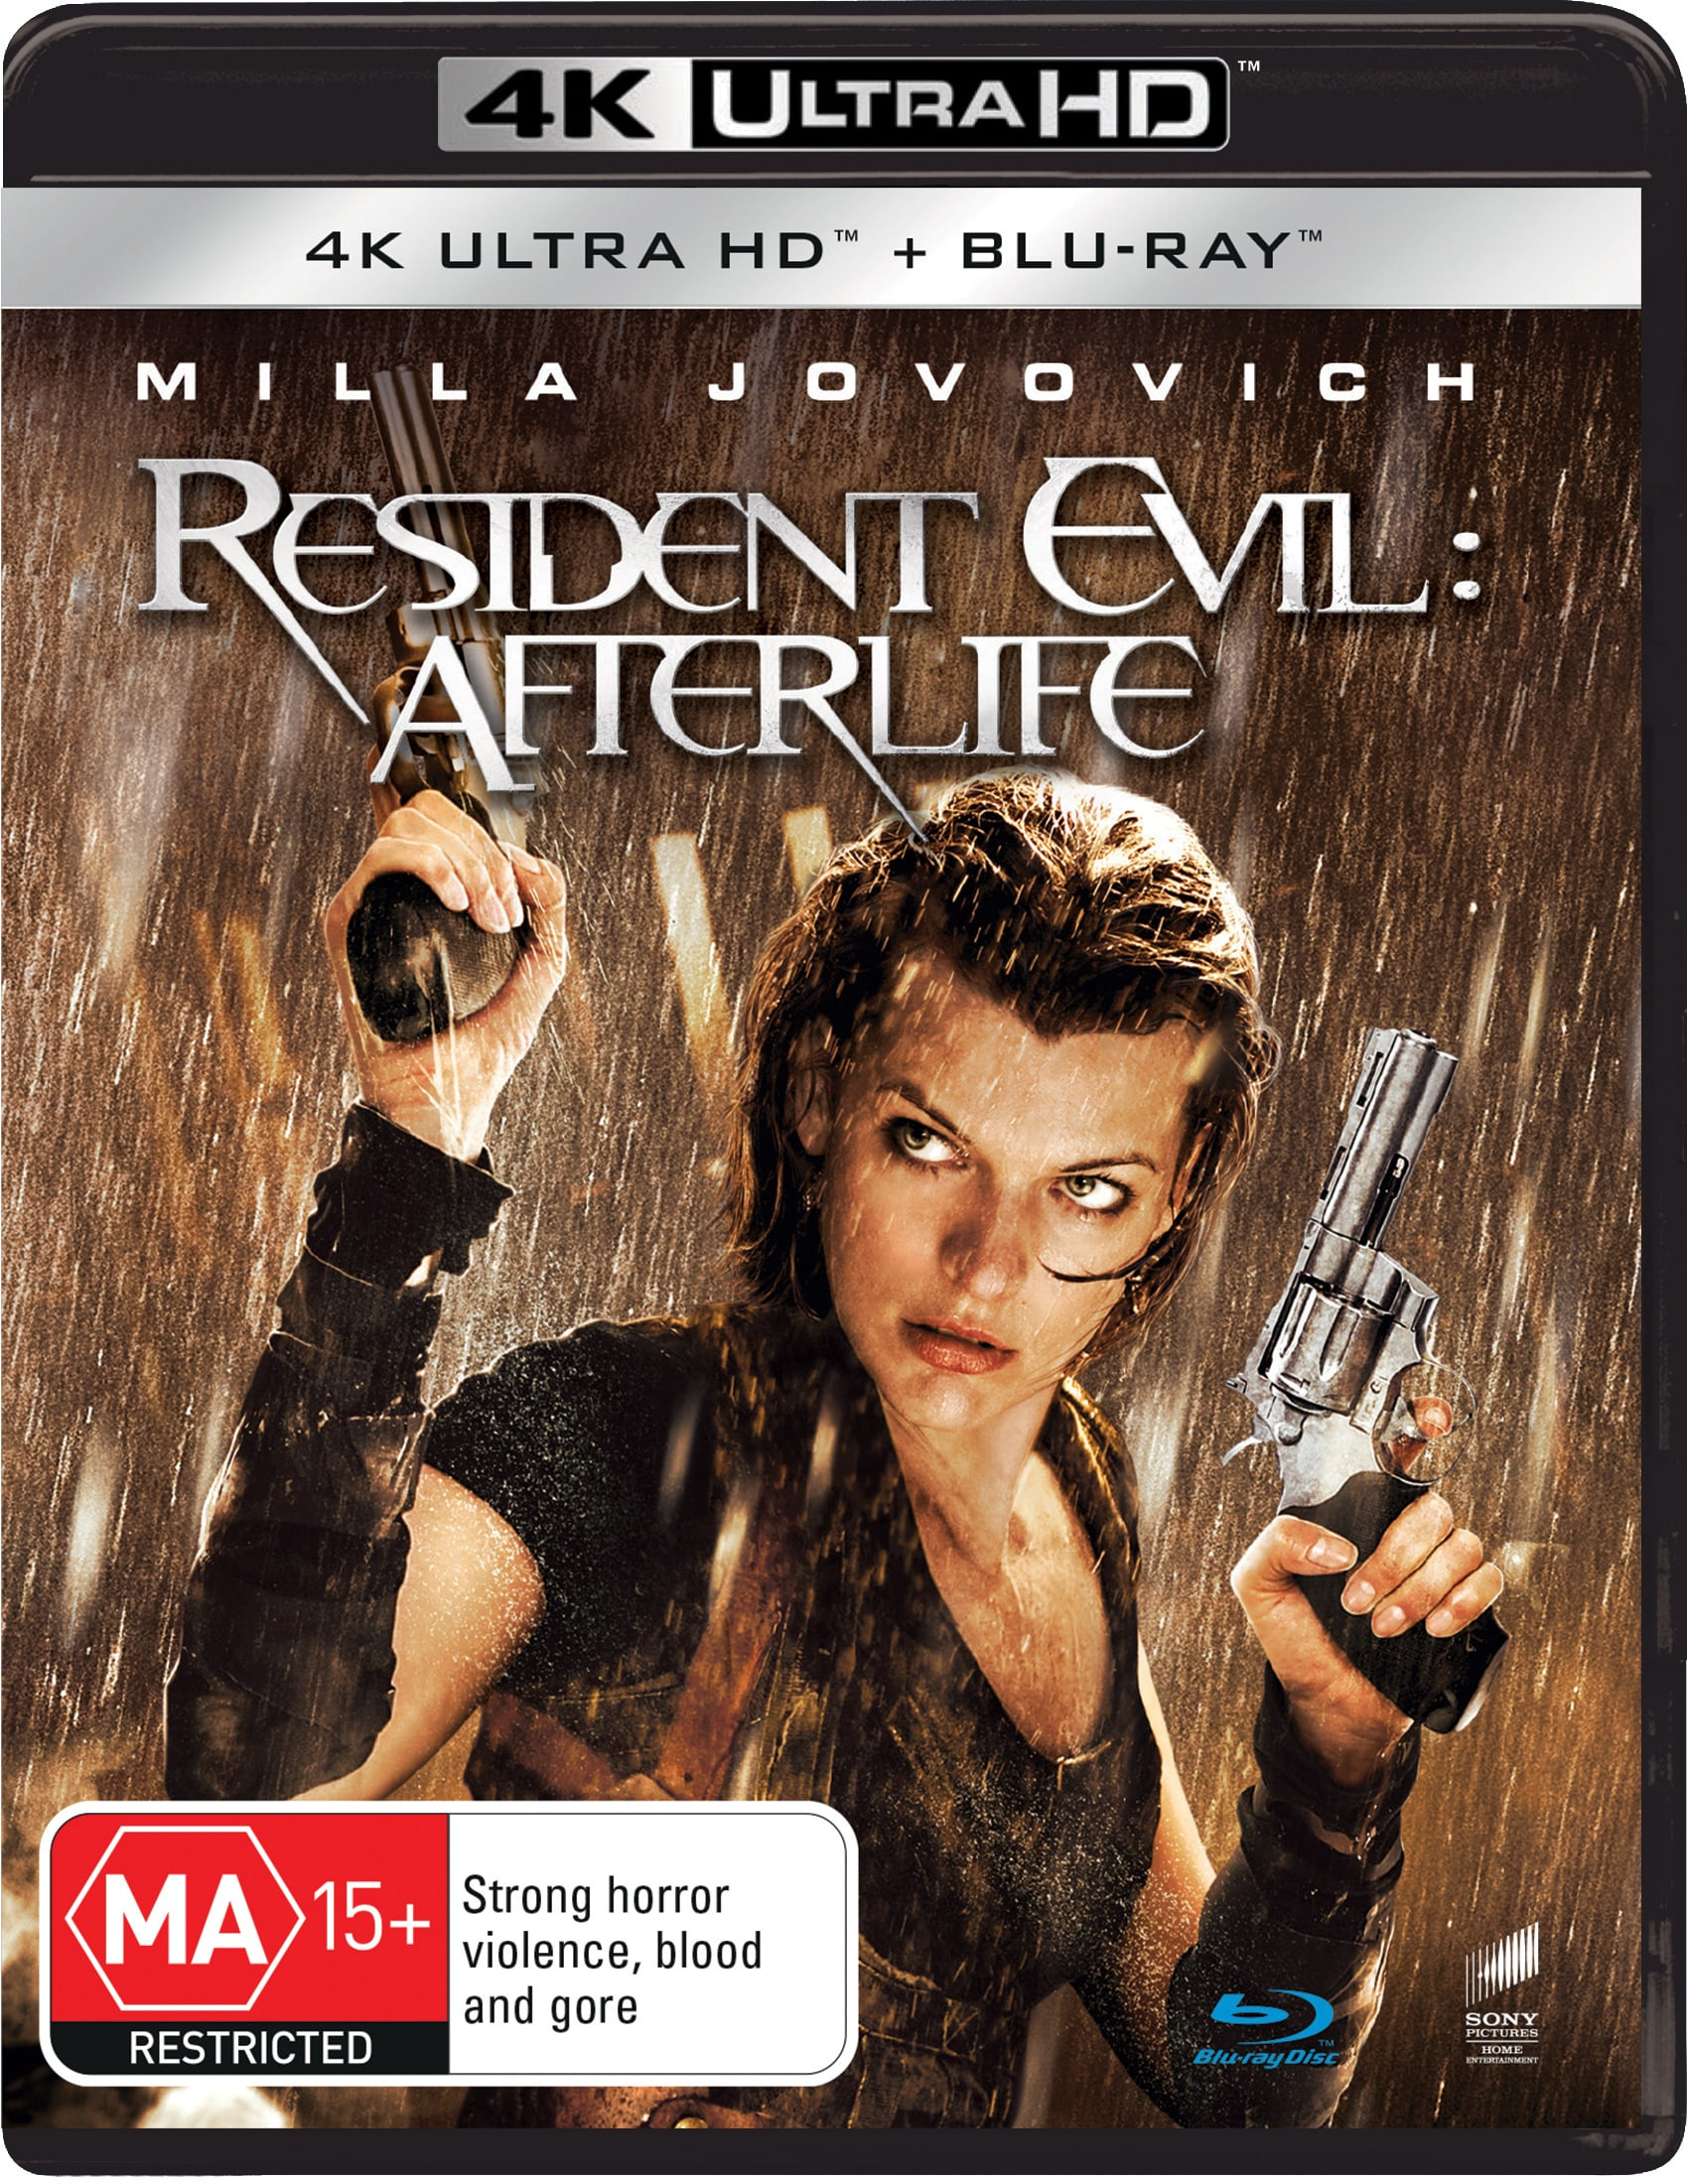 Resident Evil: Afterlife (4K Ultra HD + Blu-ray) [UHD]